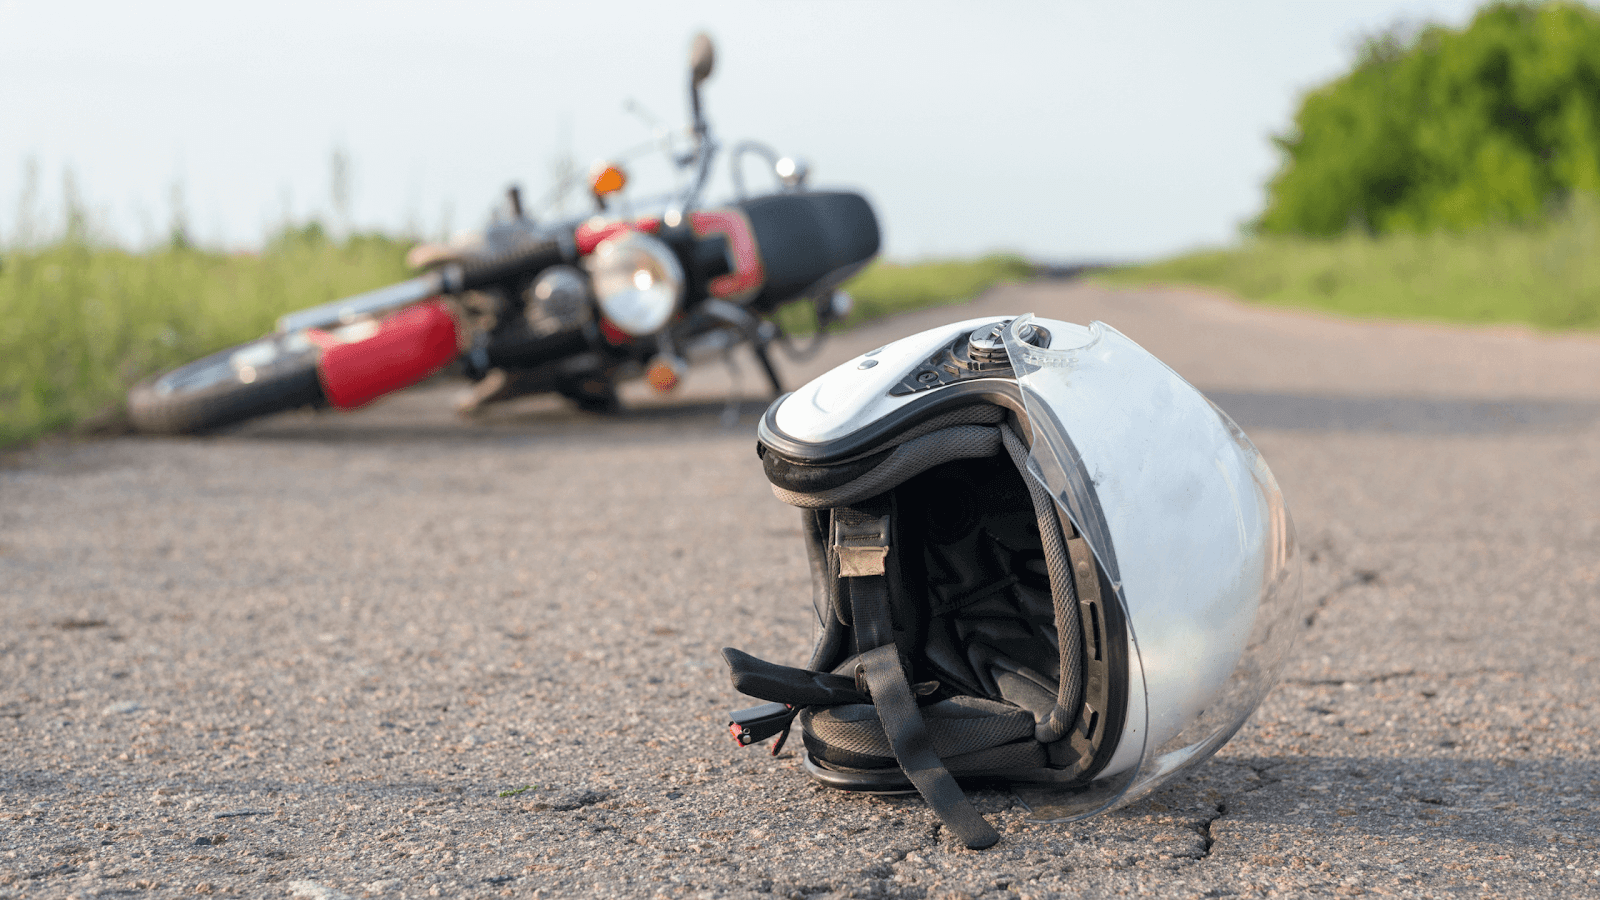 Motorcycle accidents are far too common and often results in serious injuries. It is wise to understand all of the ways that you can keep yourself and others safe when you are riding a motorcycle. Here are 7 tips to help you ride safely and some tips to help you choose the best attorney for you if you do happen to get involved in a motorcycle accident.